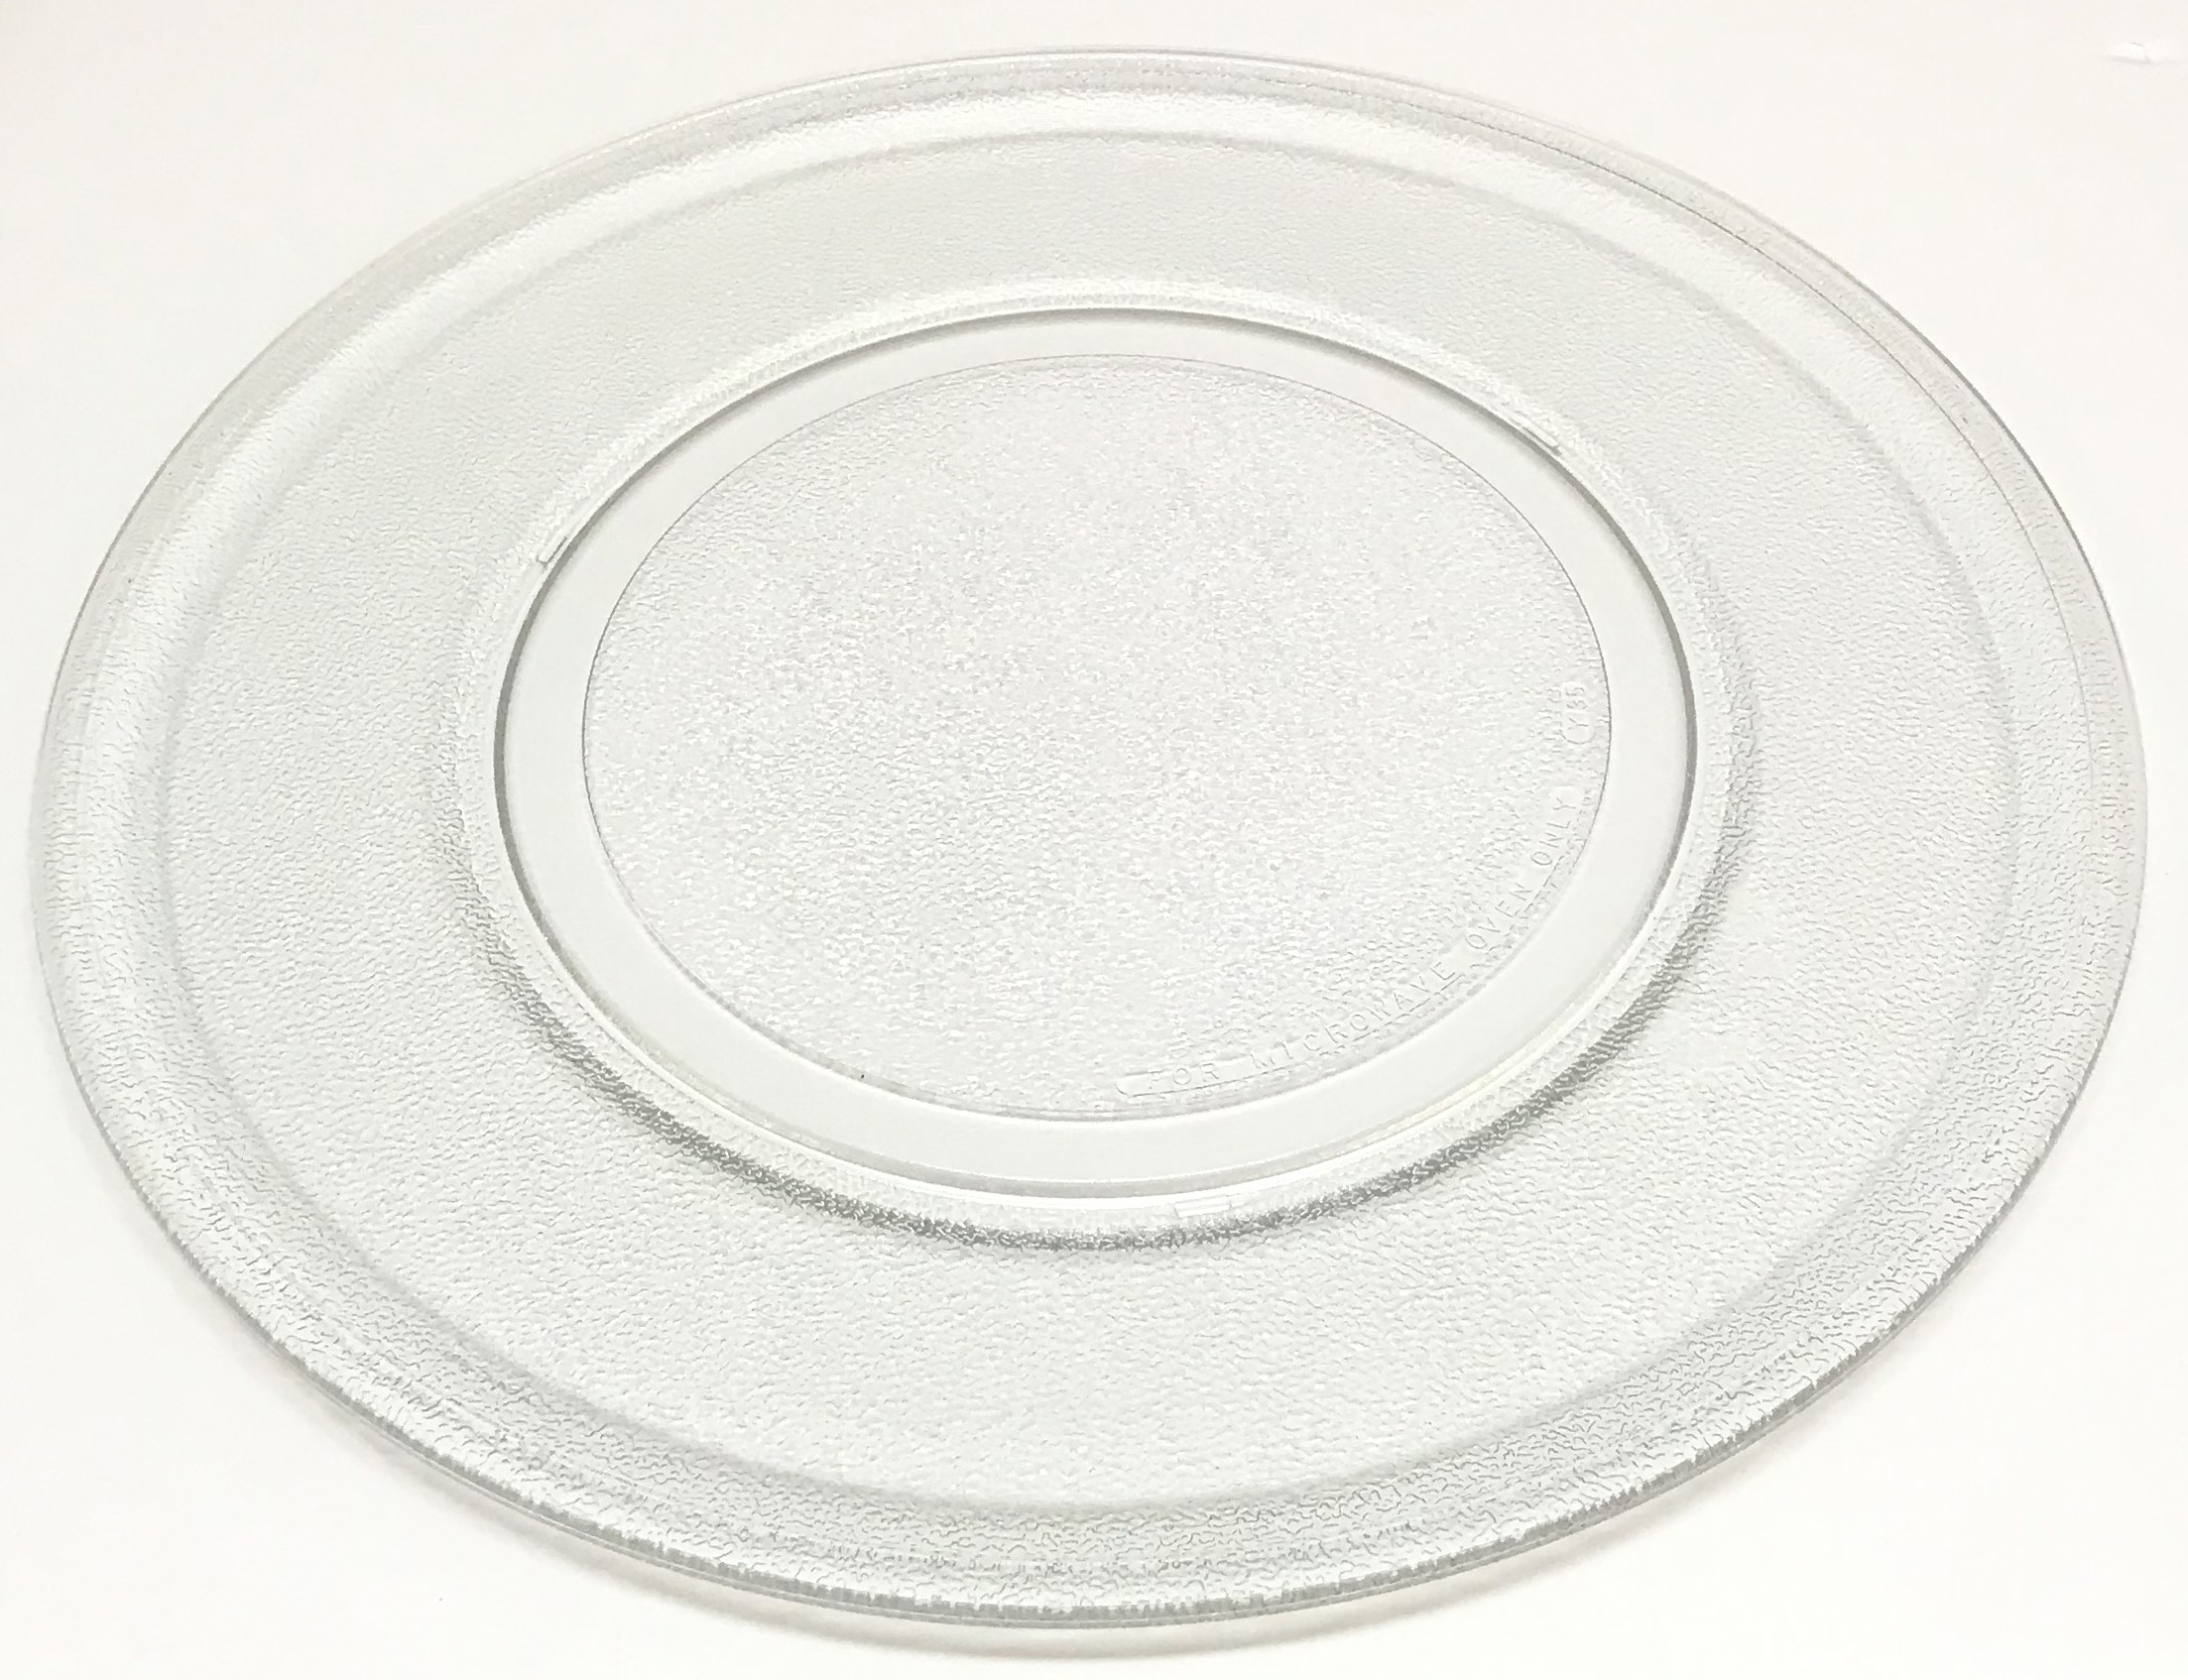 LCRT2010ST OEM LG Microwave Glass Plate Turntable Shipped With LRM2060ST LCS2045WBK